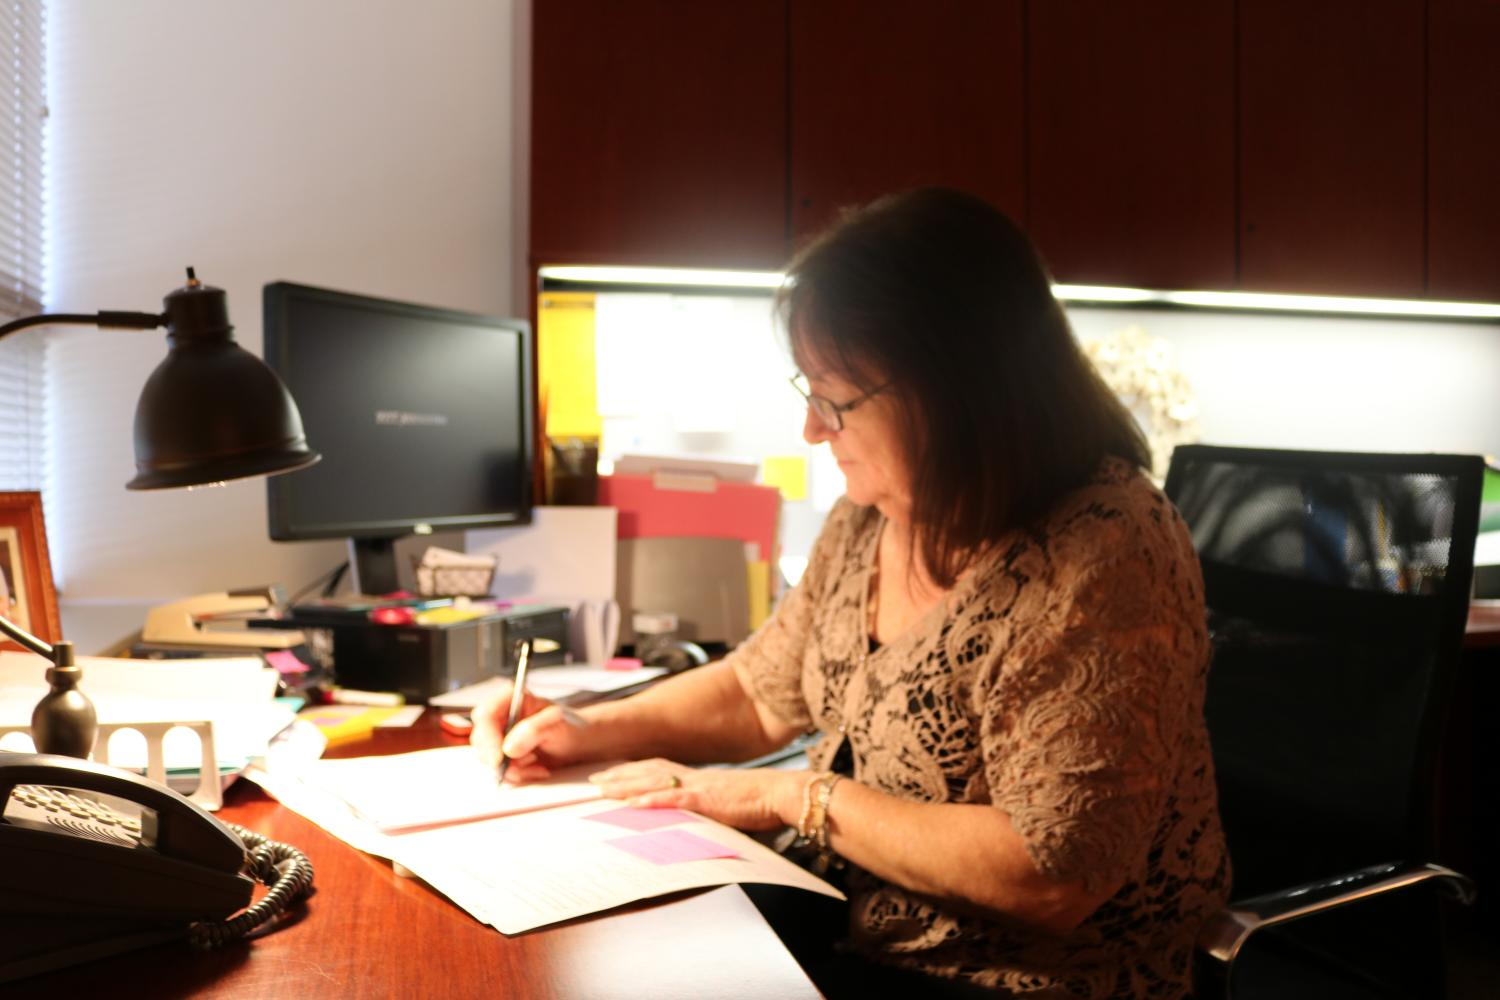 Health and Counseling Director Shelley Peruso works at her desk in the Student Union's Health Services Office.